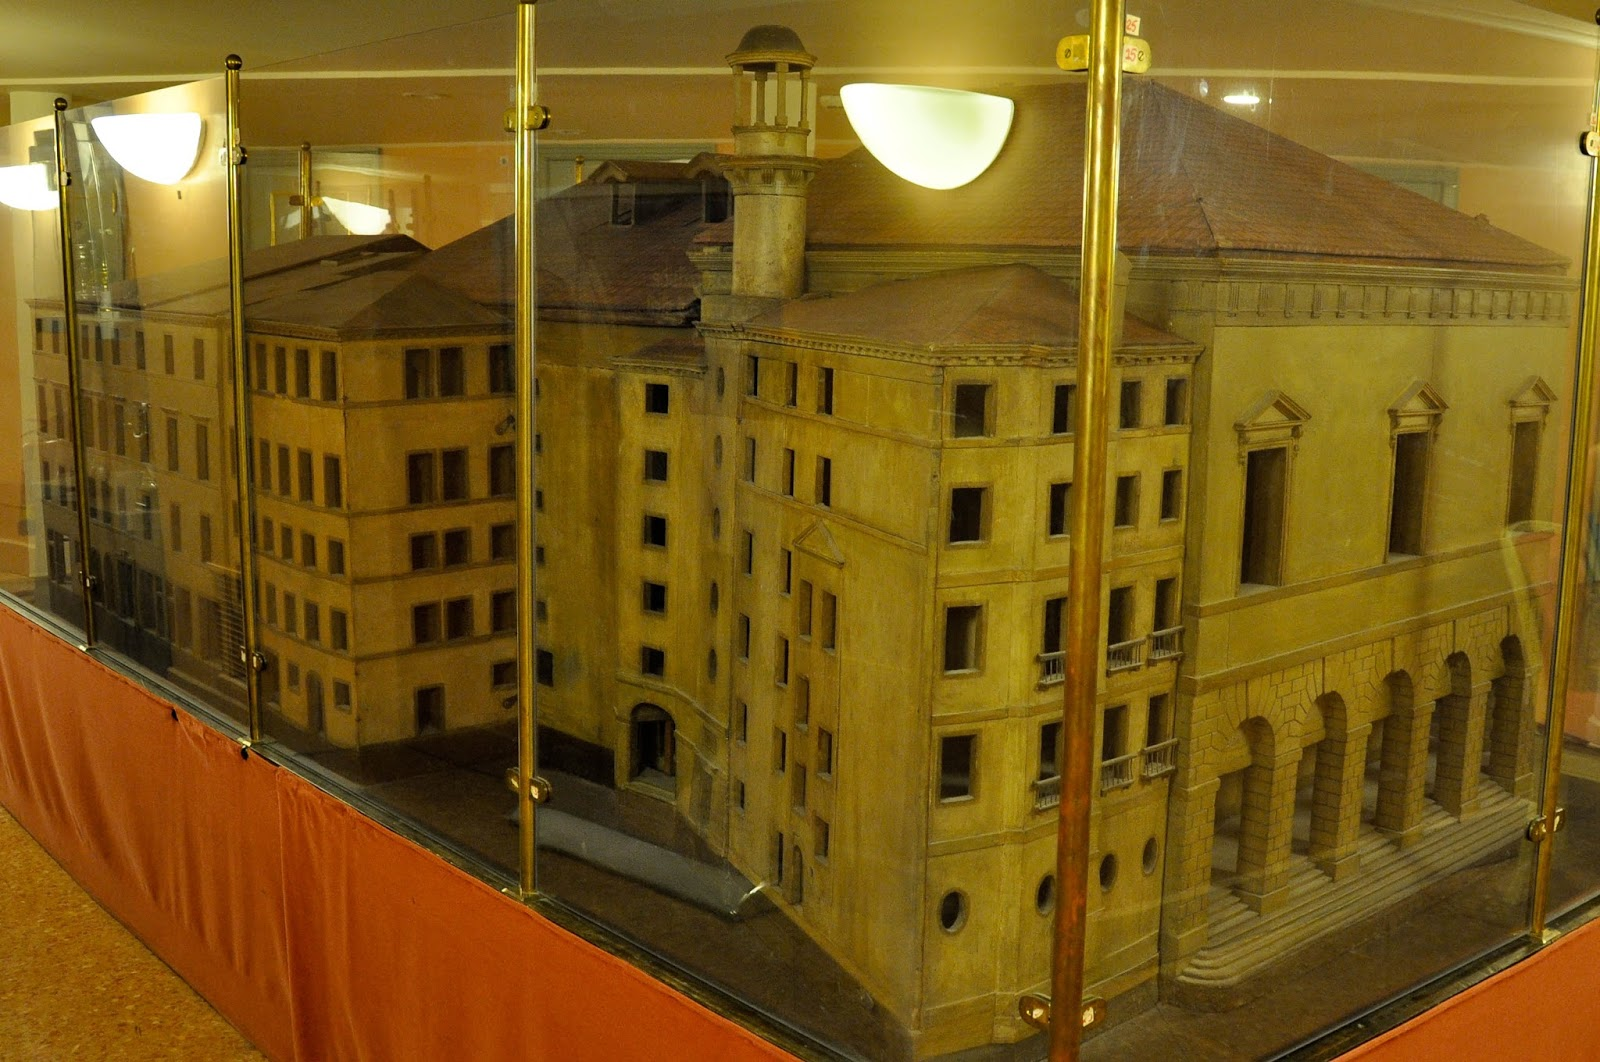 A scaled down model of the theatre, La Fenice, Venice, Italy